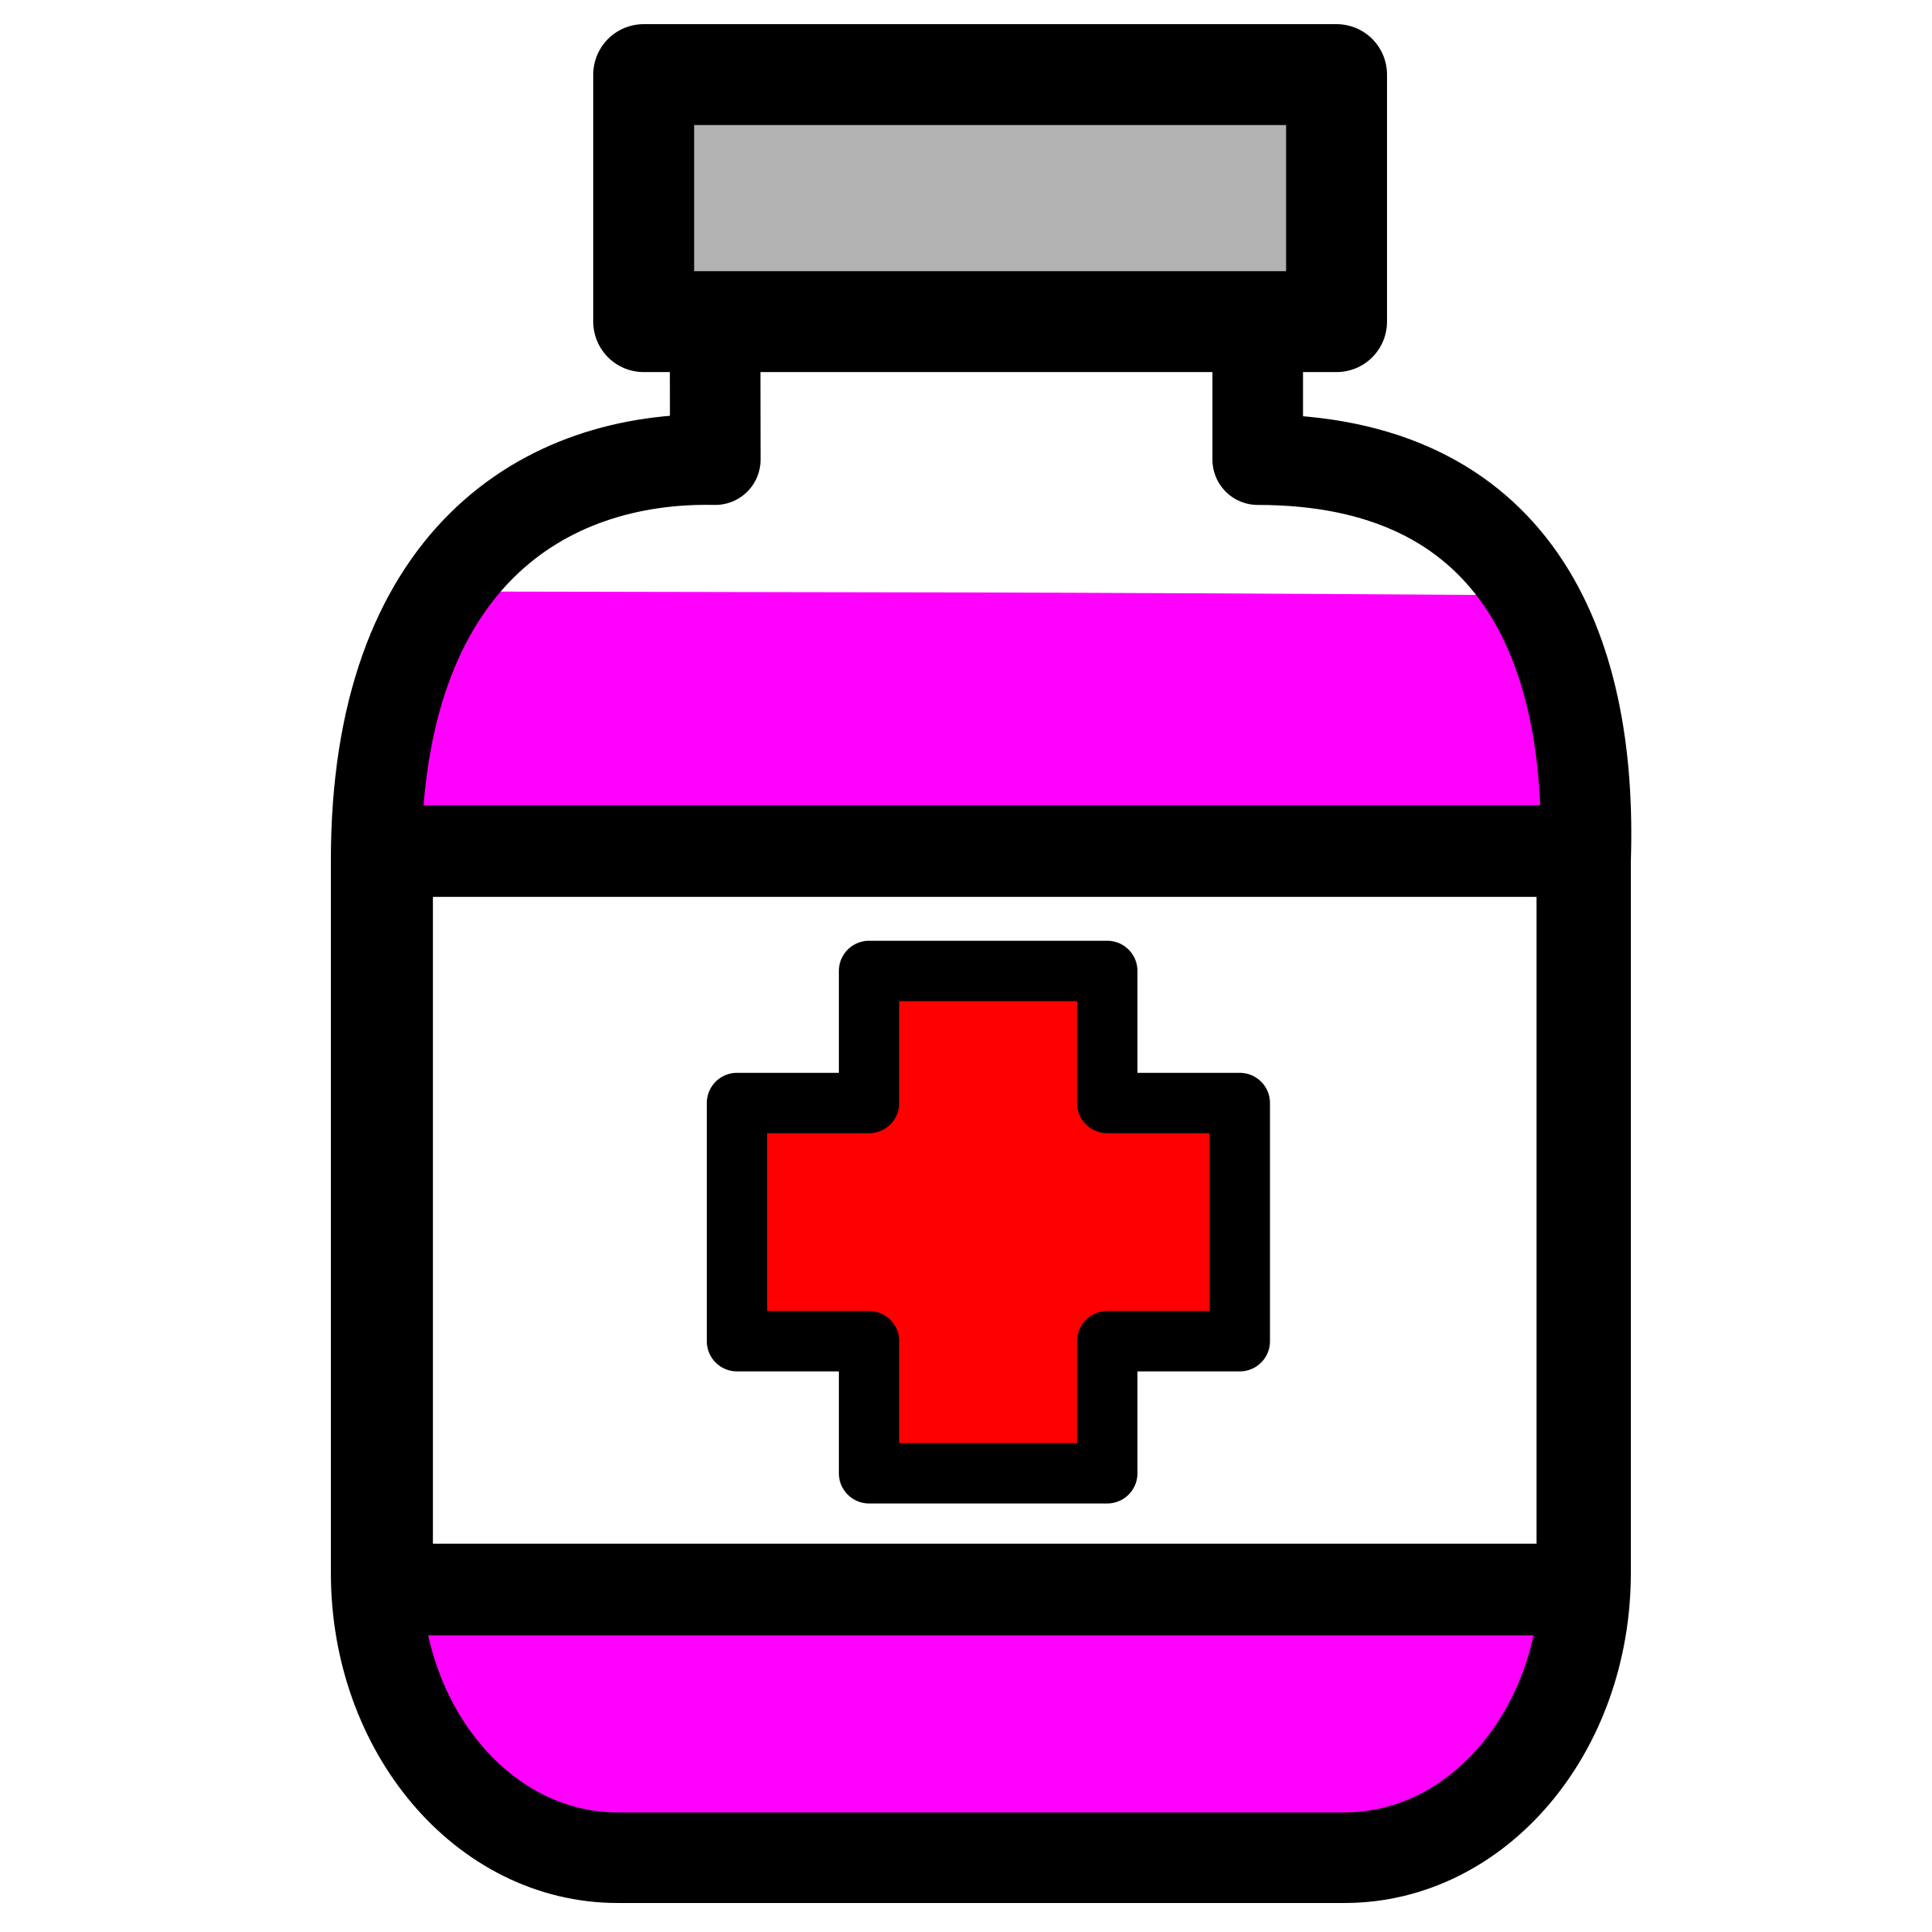 graphic transparent library Medication clipart. Medicine icon big image